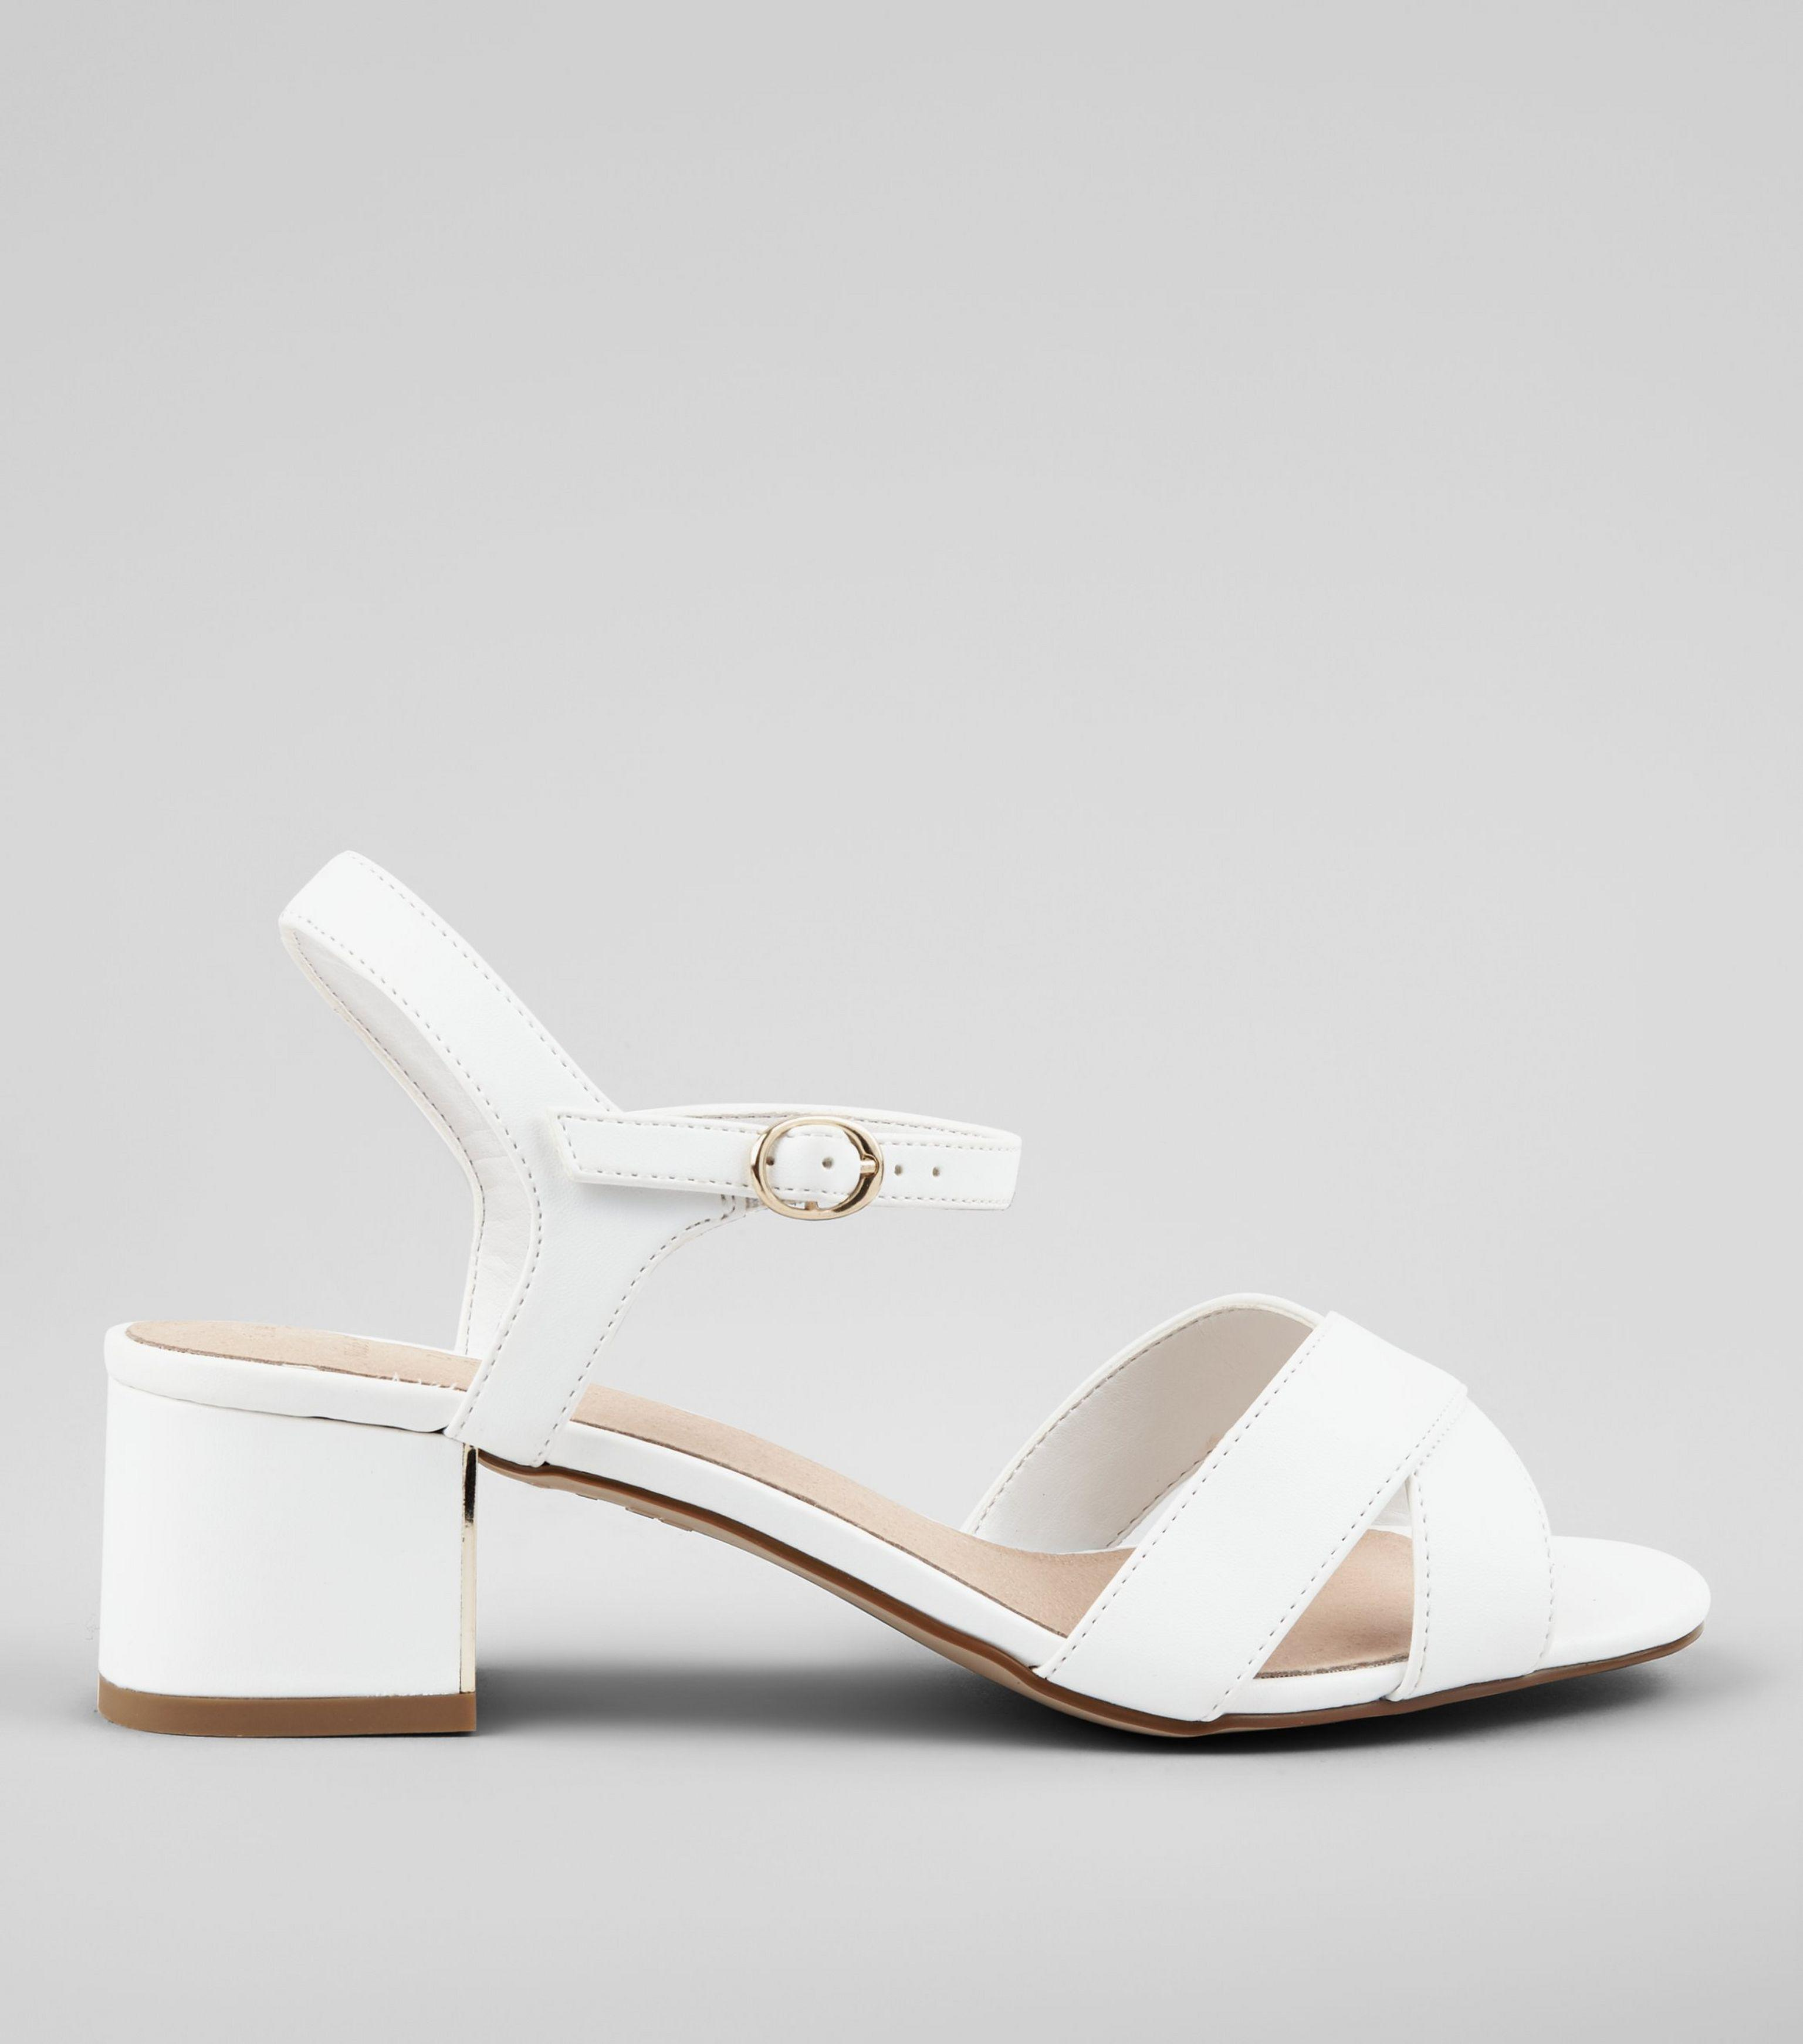 enjoy clearance price 2019 best sell the best Wide Fit White Comfort Cross Strap Block Heel Sandals